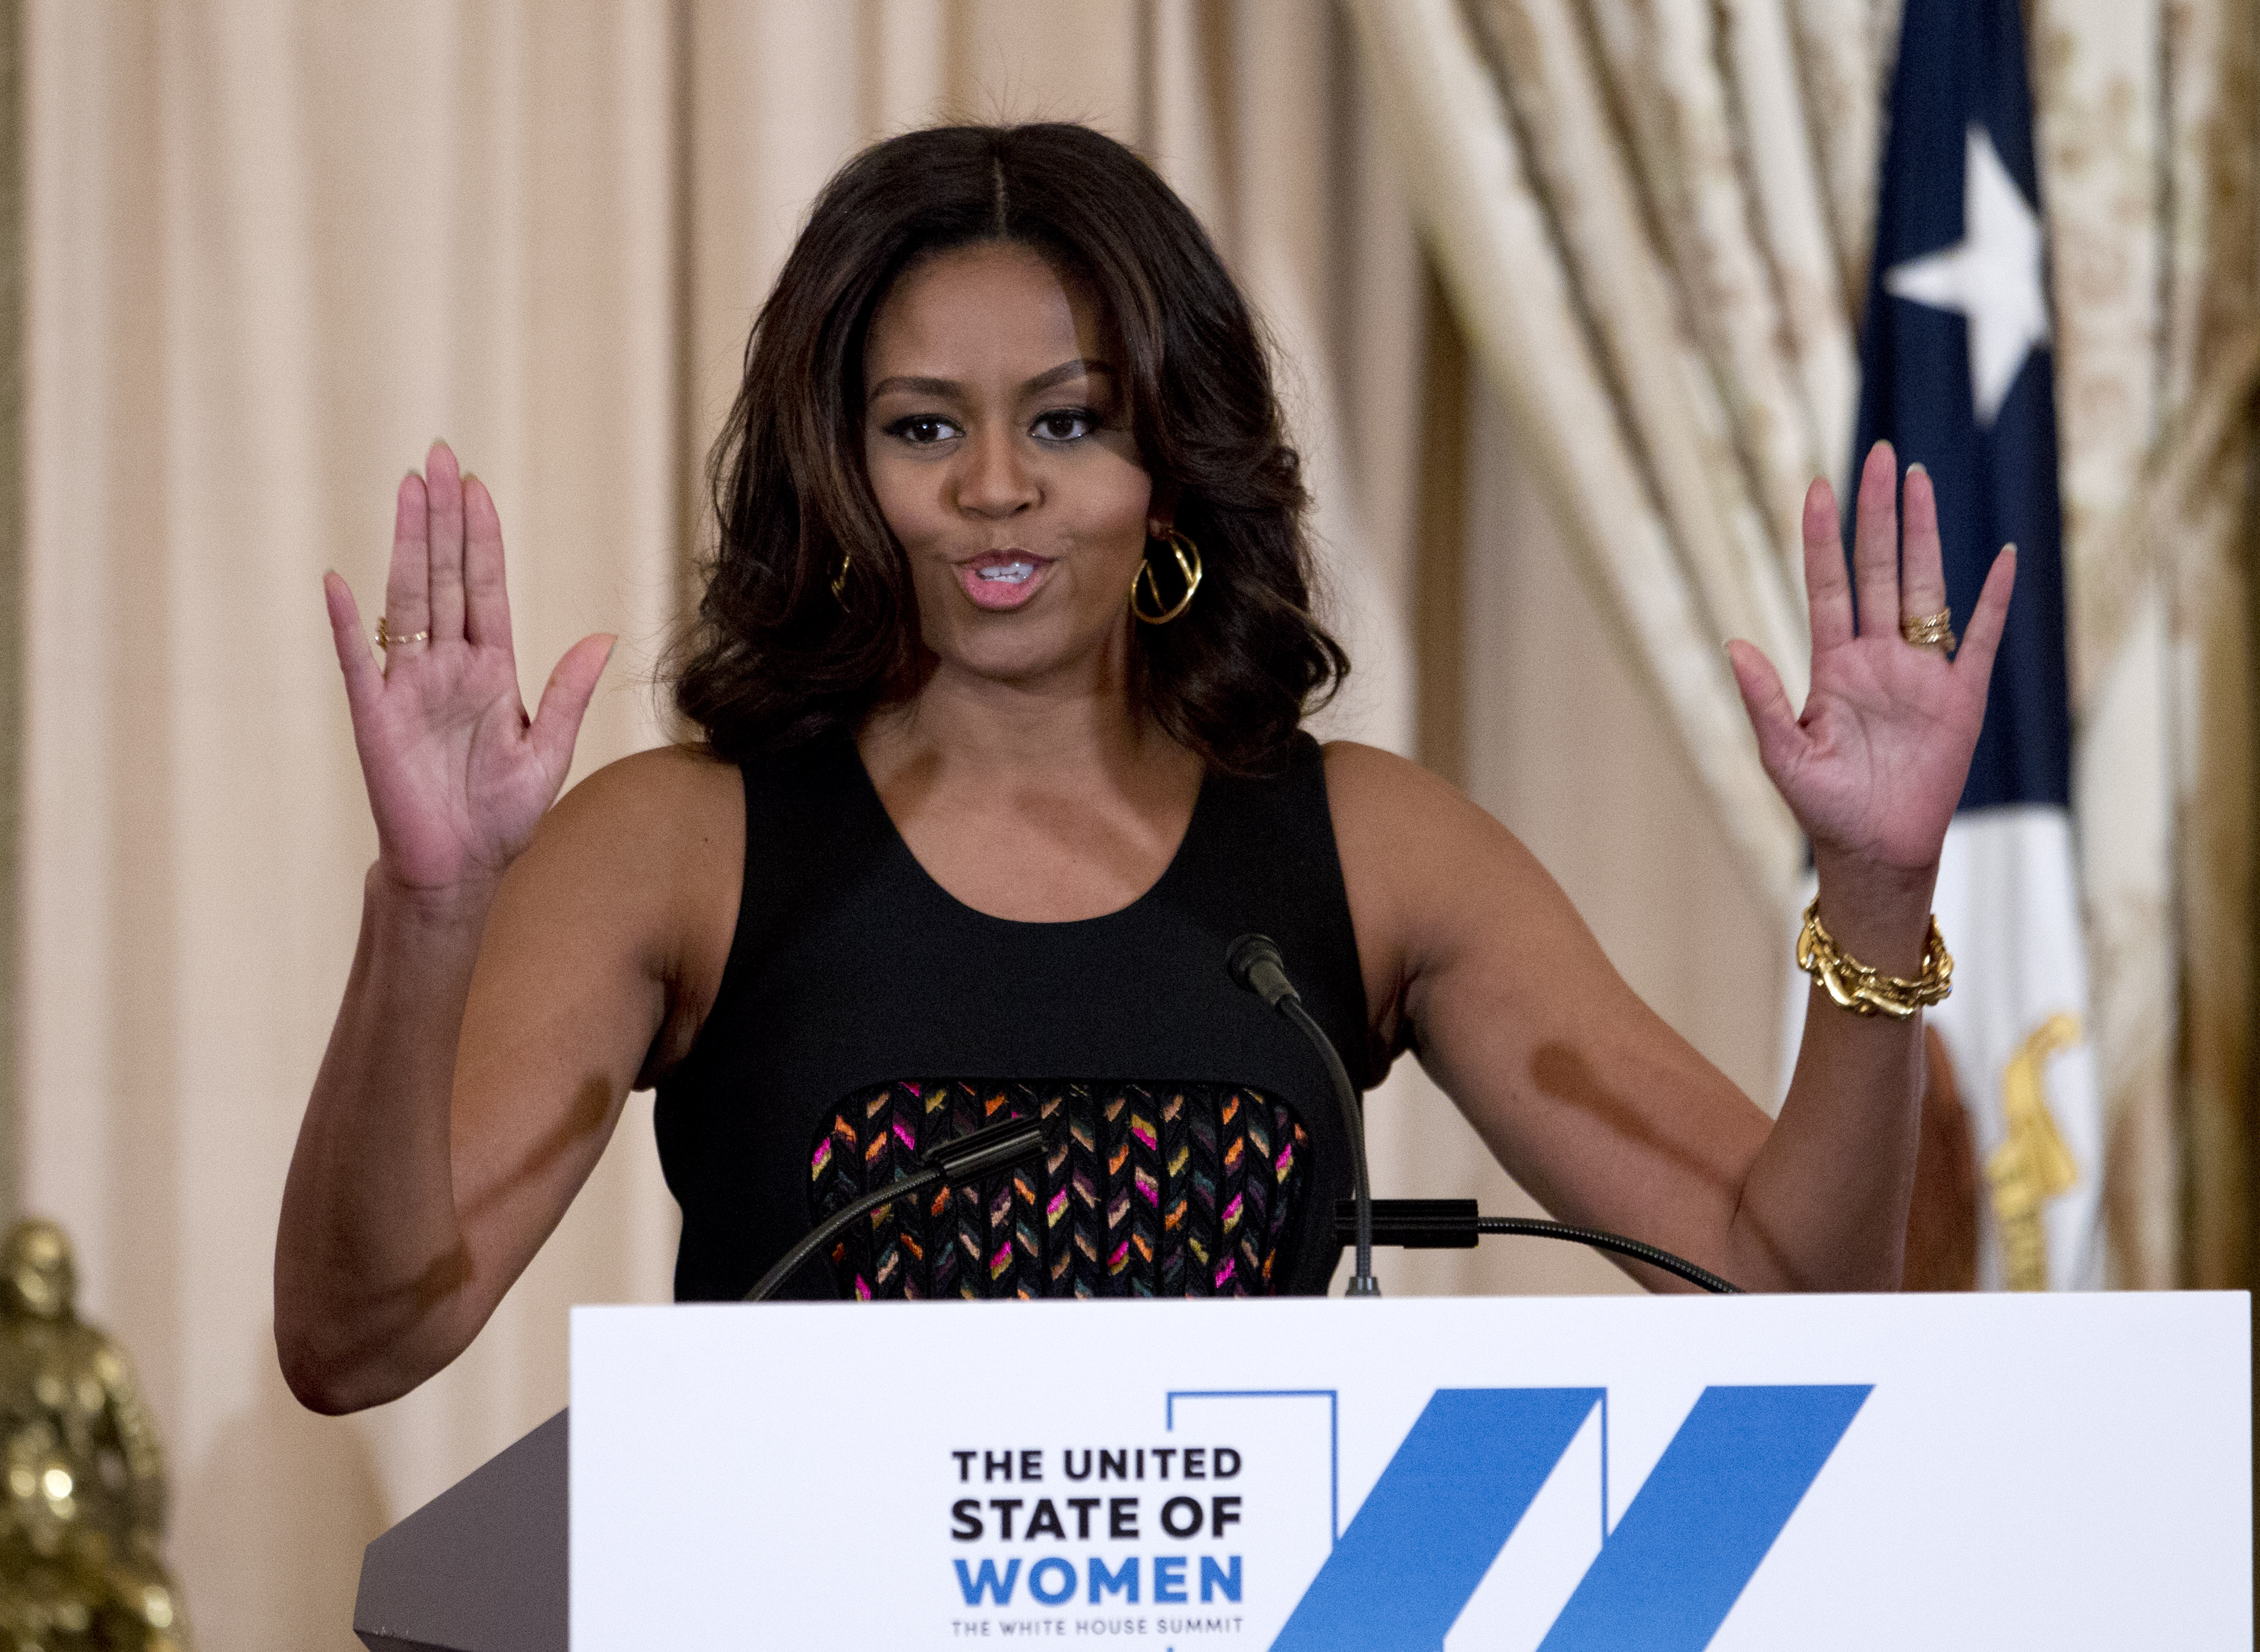 US First lady Michelle Obama speaks during a dinner to celebrate The White House Summit on the United State of Women at Department of State in Washington, DC on June 14, 2016.  (JOSE LUIS MAGANA/AFP/Getty Images)